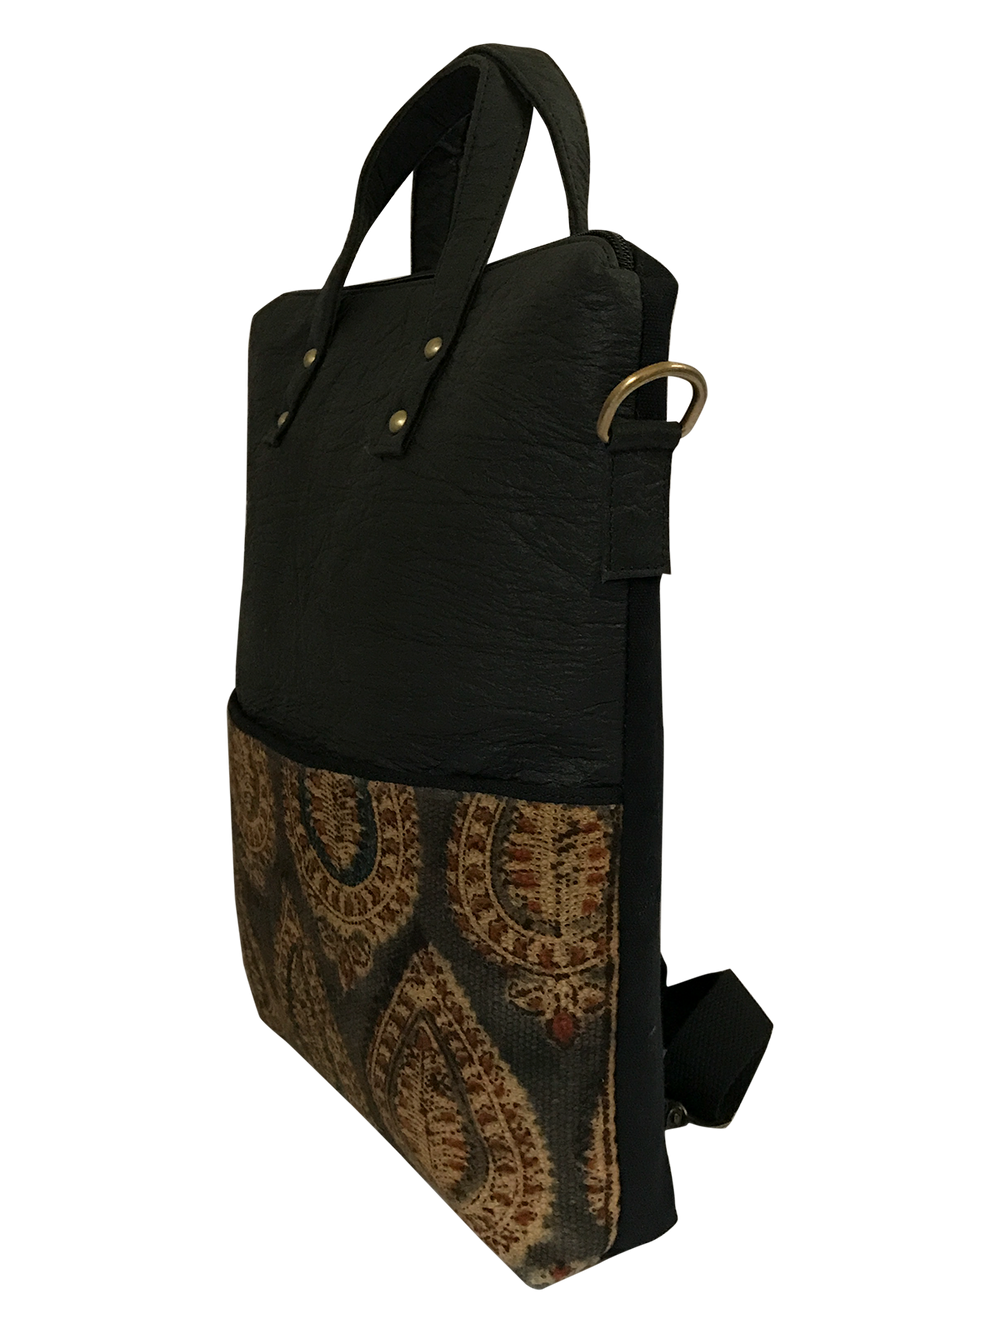 Pinatex Convertible Bag